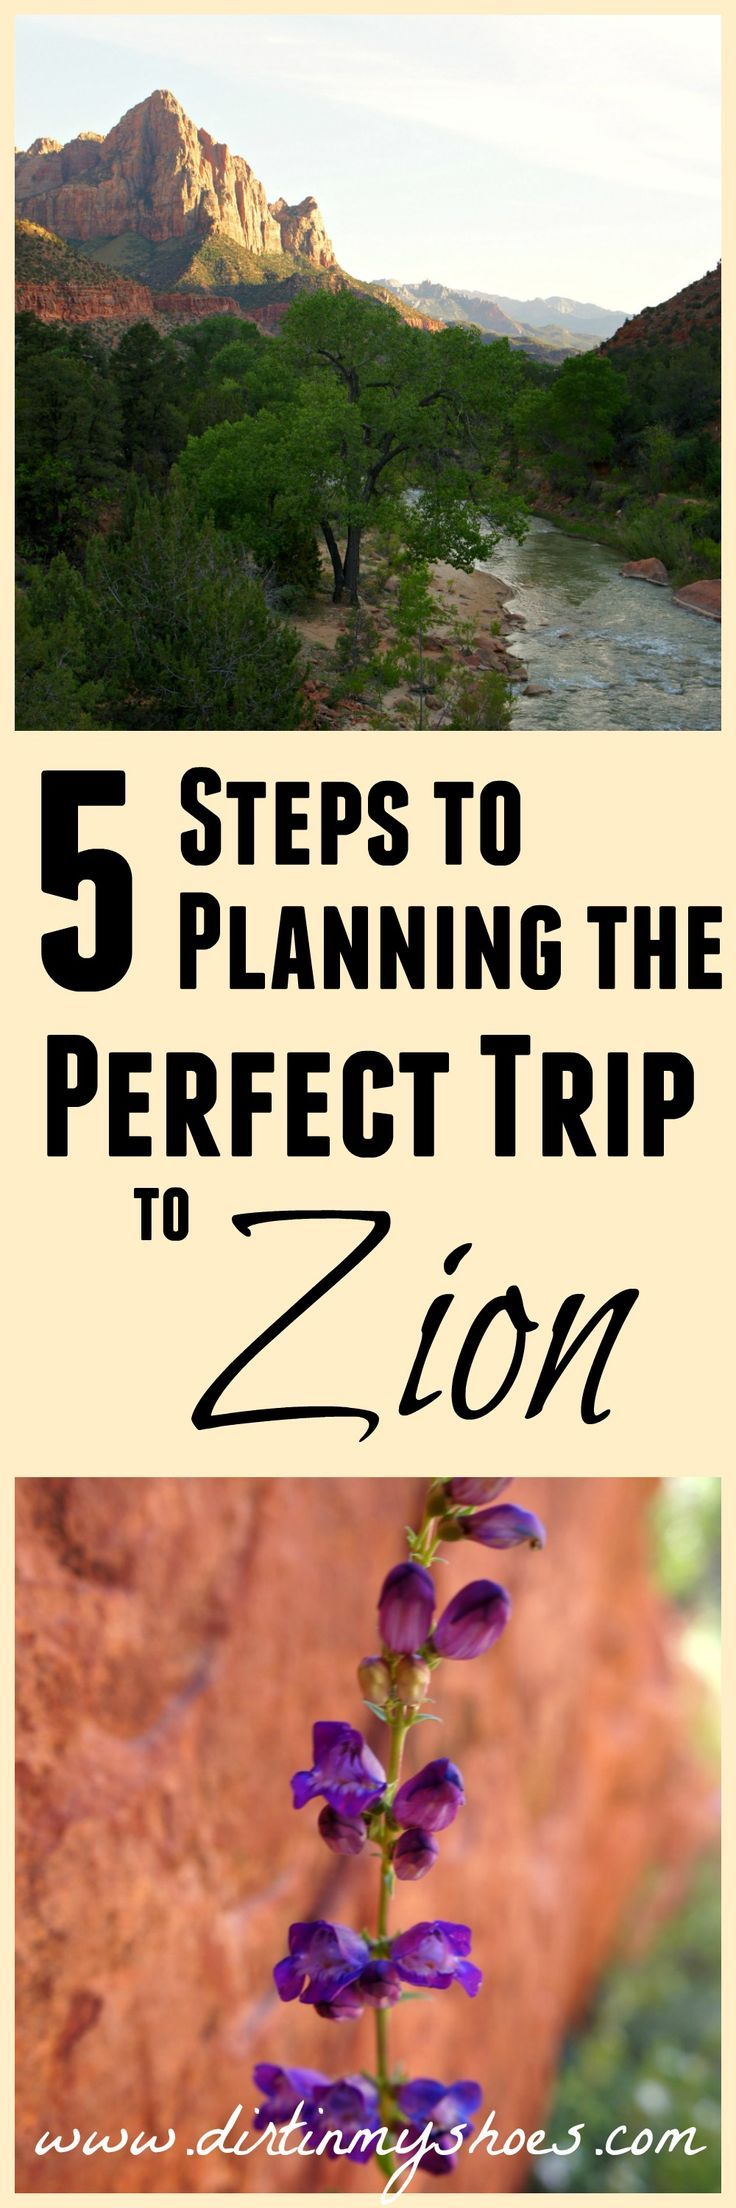 Plan the perfect trip to Zion National Park in 5 steps with help from a former park ranger!